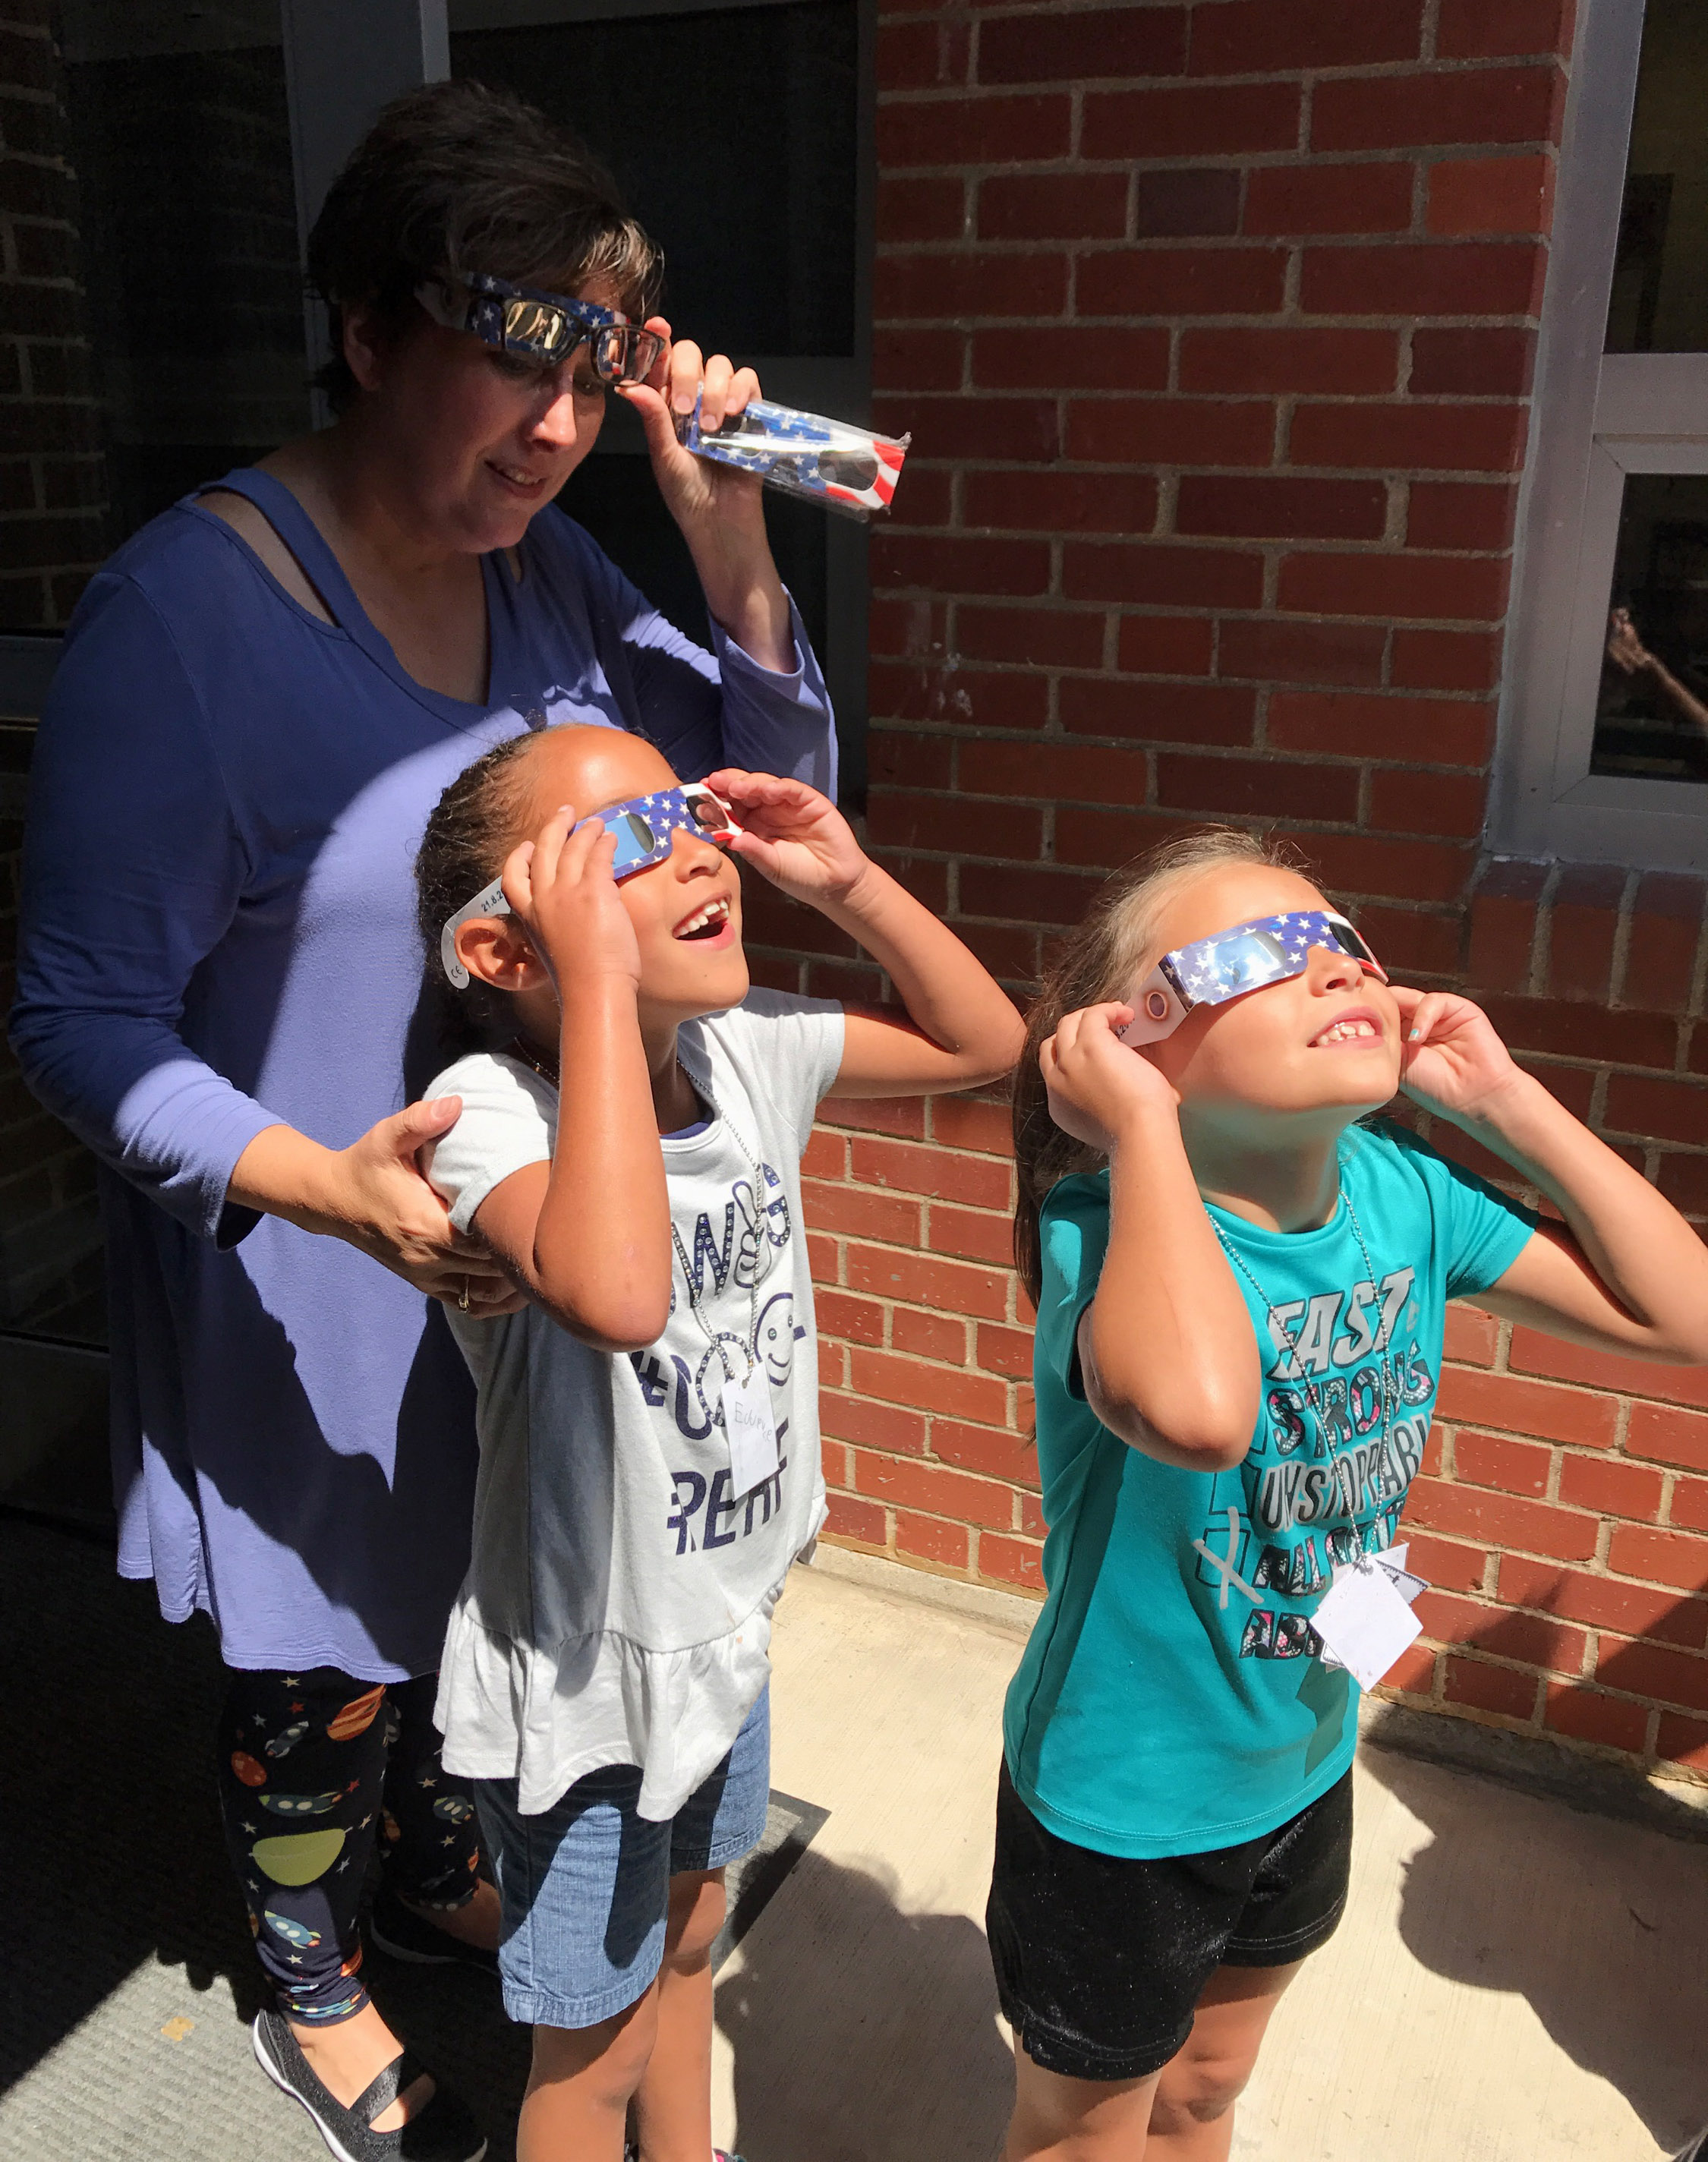 CES second-grade teacher Lynne Horn views the eclipse with her students.